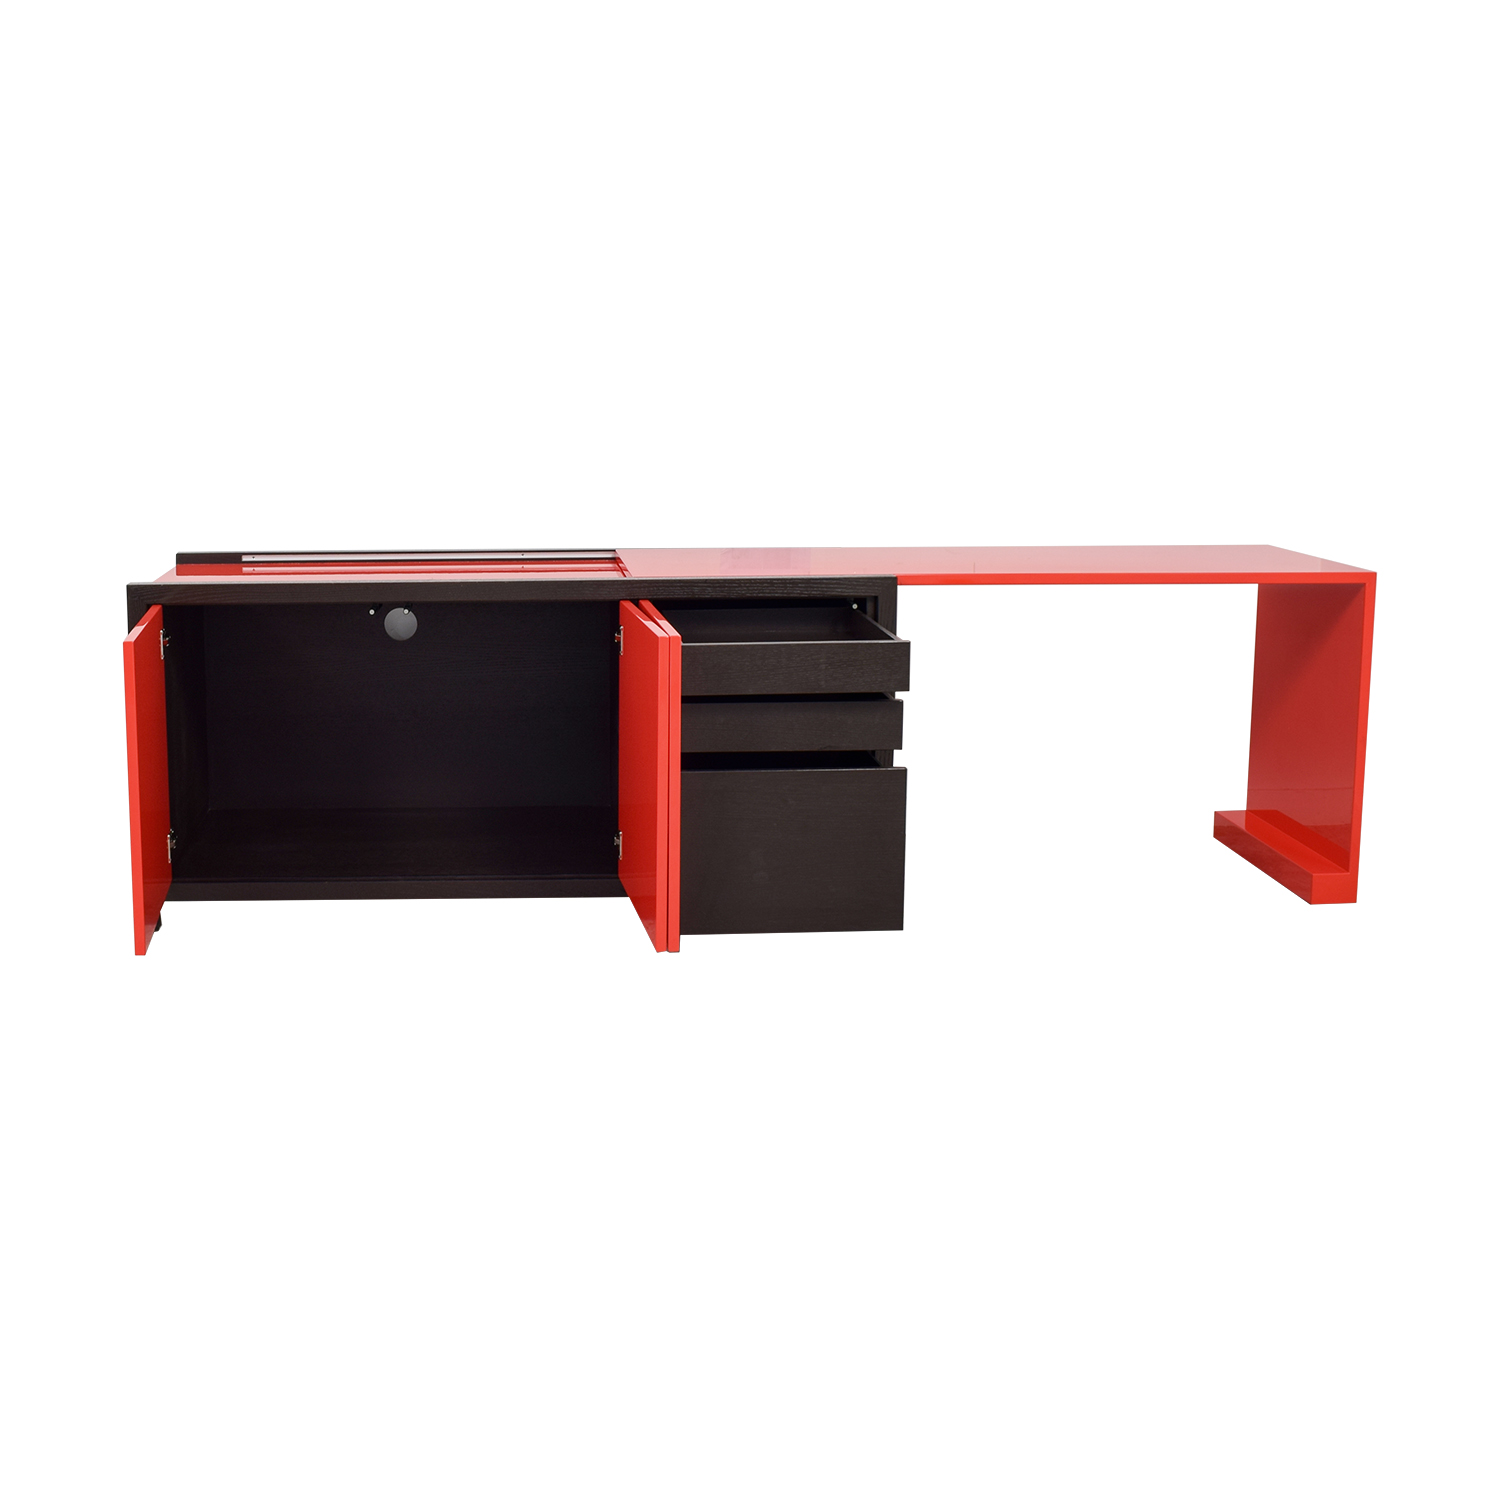 Dune Dune Modern Le Mans Black and Red Cabinet to Desk dimensions